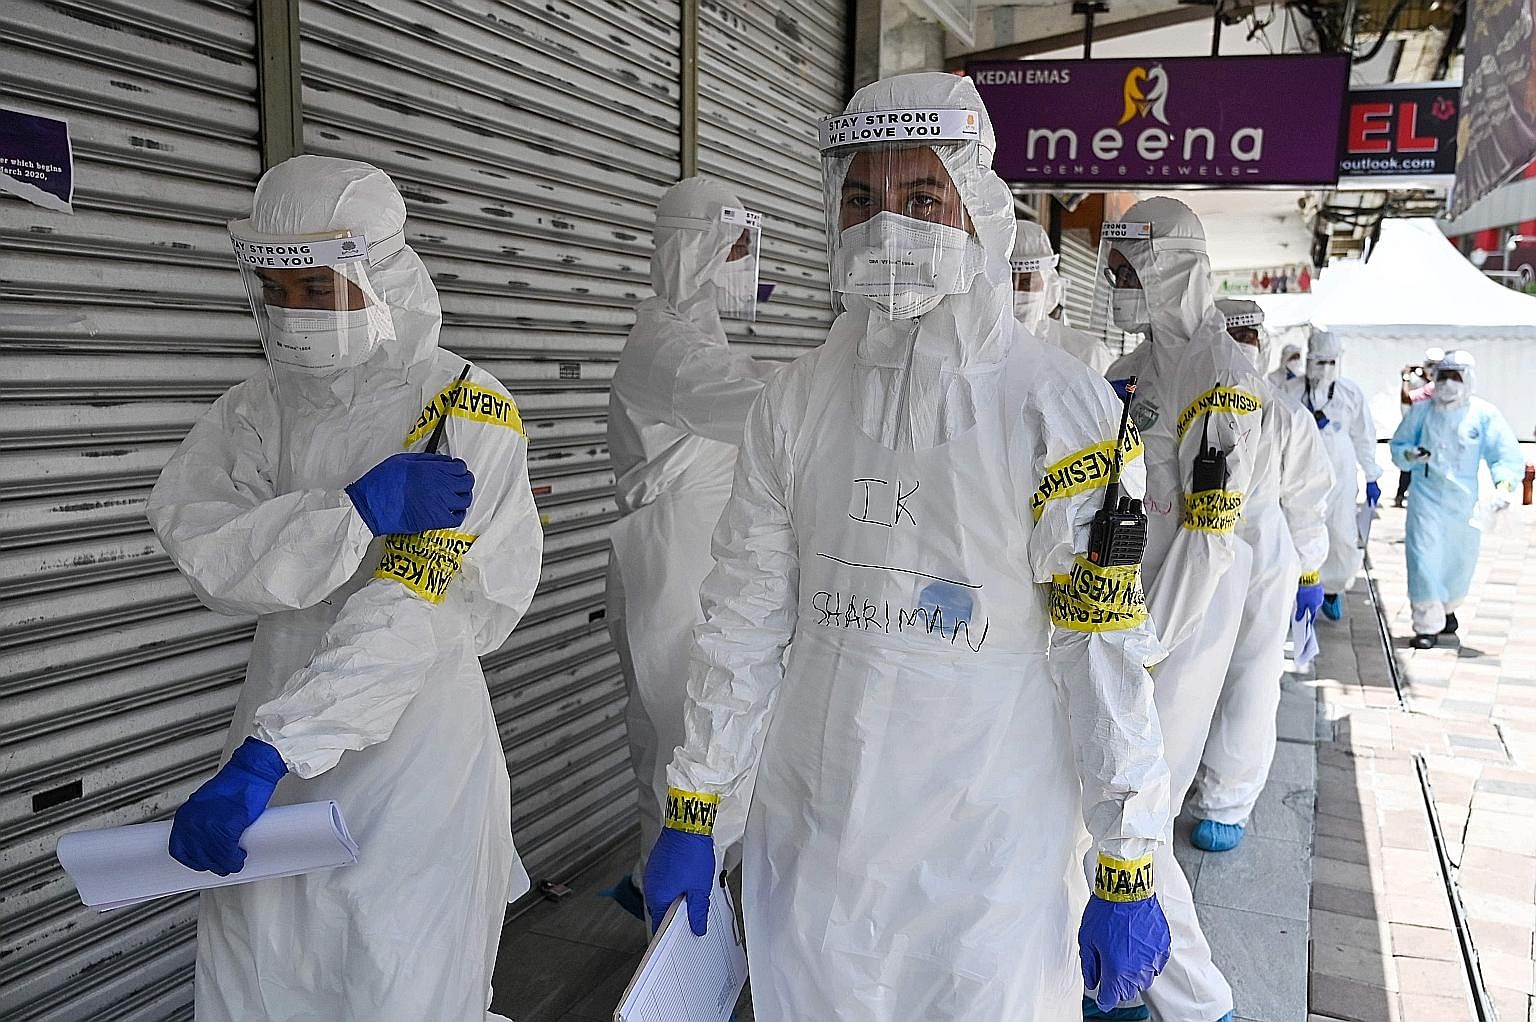 Health workers on their way to two apartment buildings in Kuala Lumpur last Wednesday, after they were cordoned off following several Covid-19 infections. Most Asean countries have tightened border controls, issued lockdown orders or taken social dis